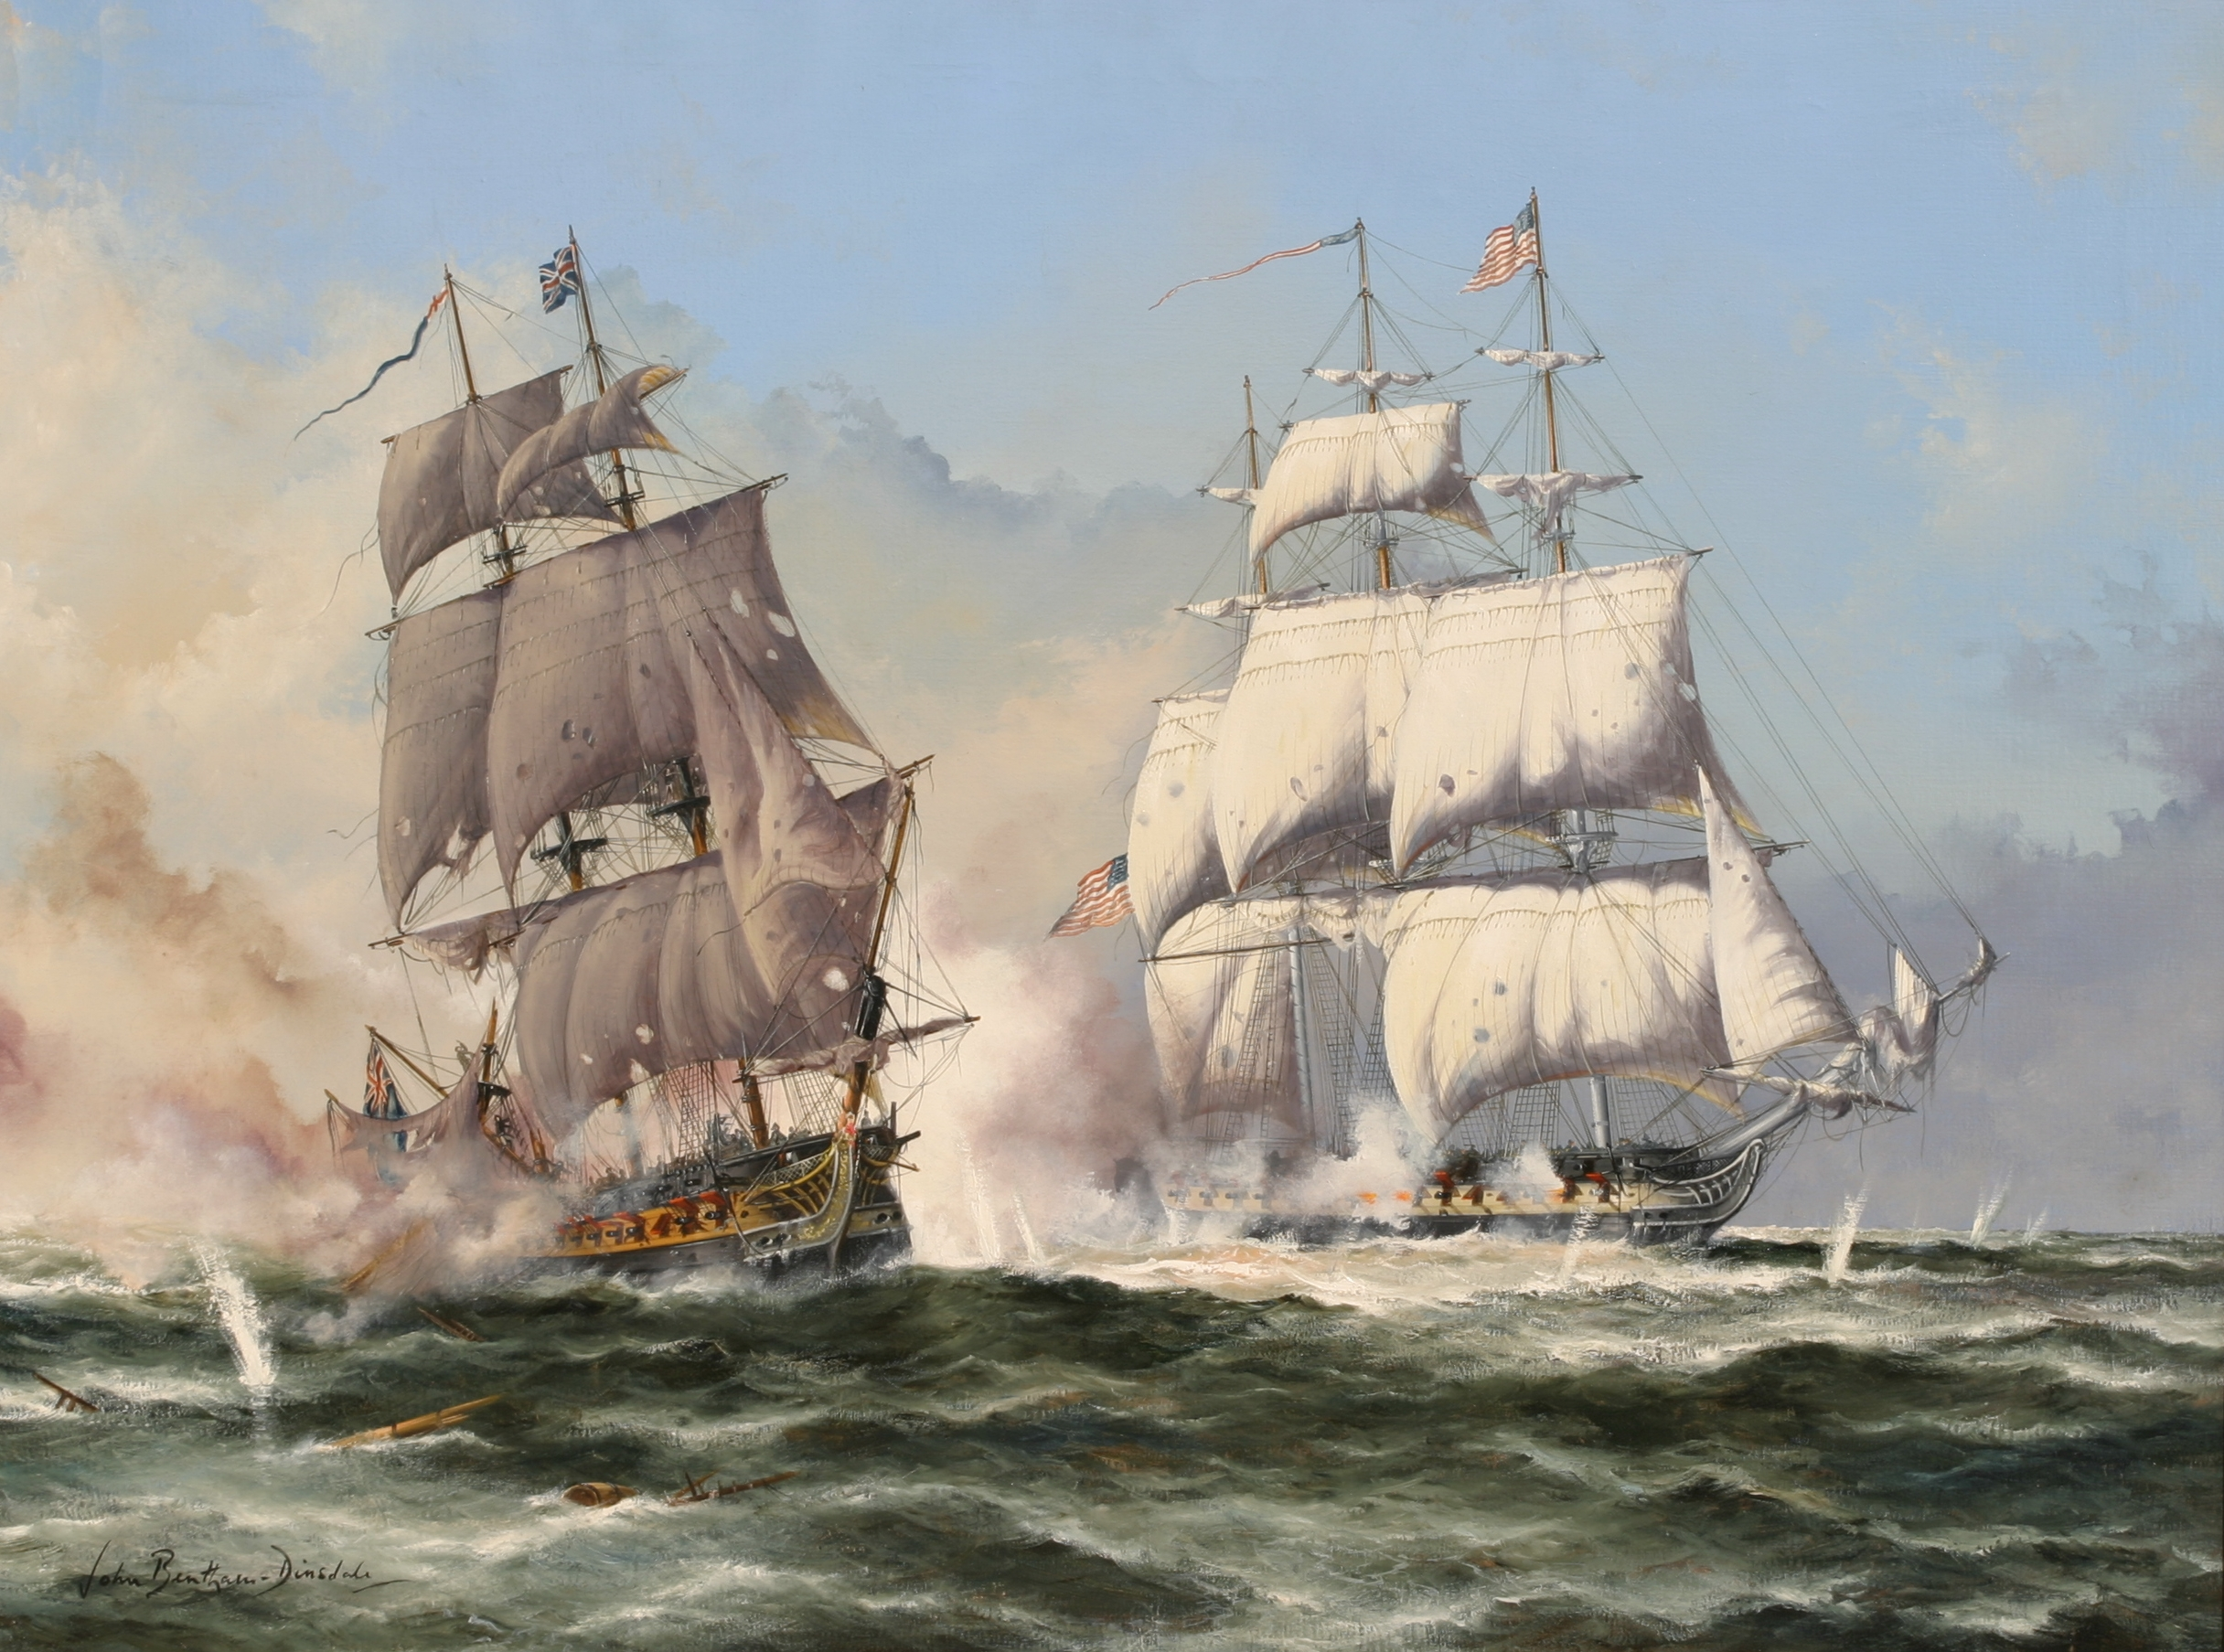 Engagement Between U.S.S CONSTITUTION and H.M.S GUERRIERE